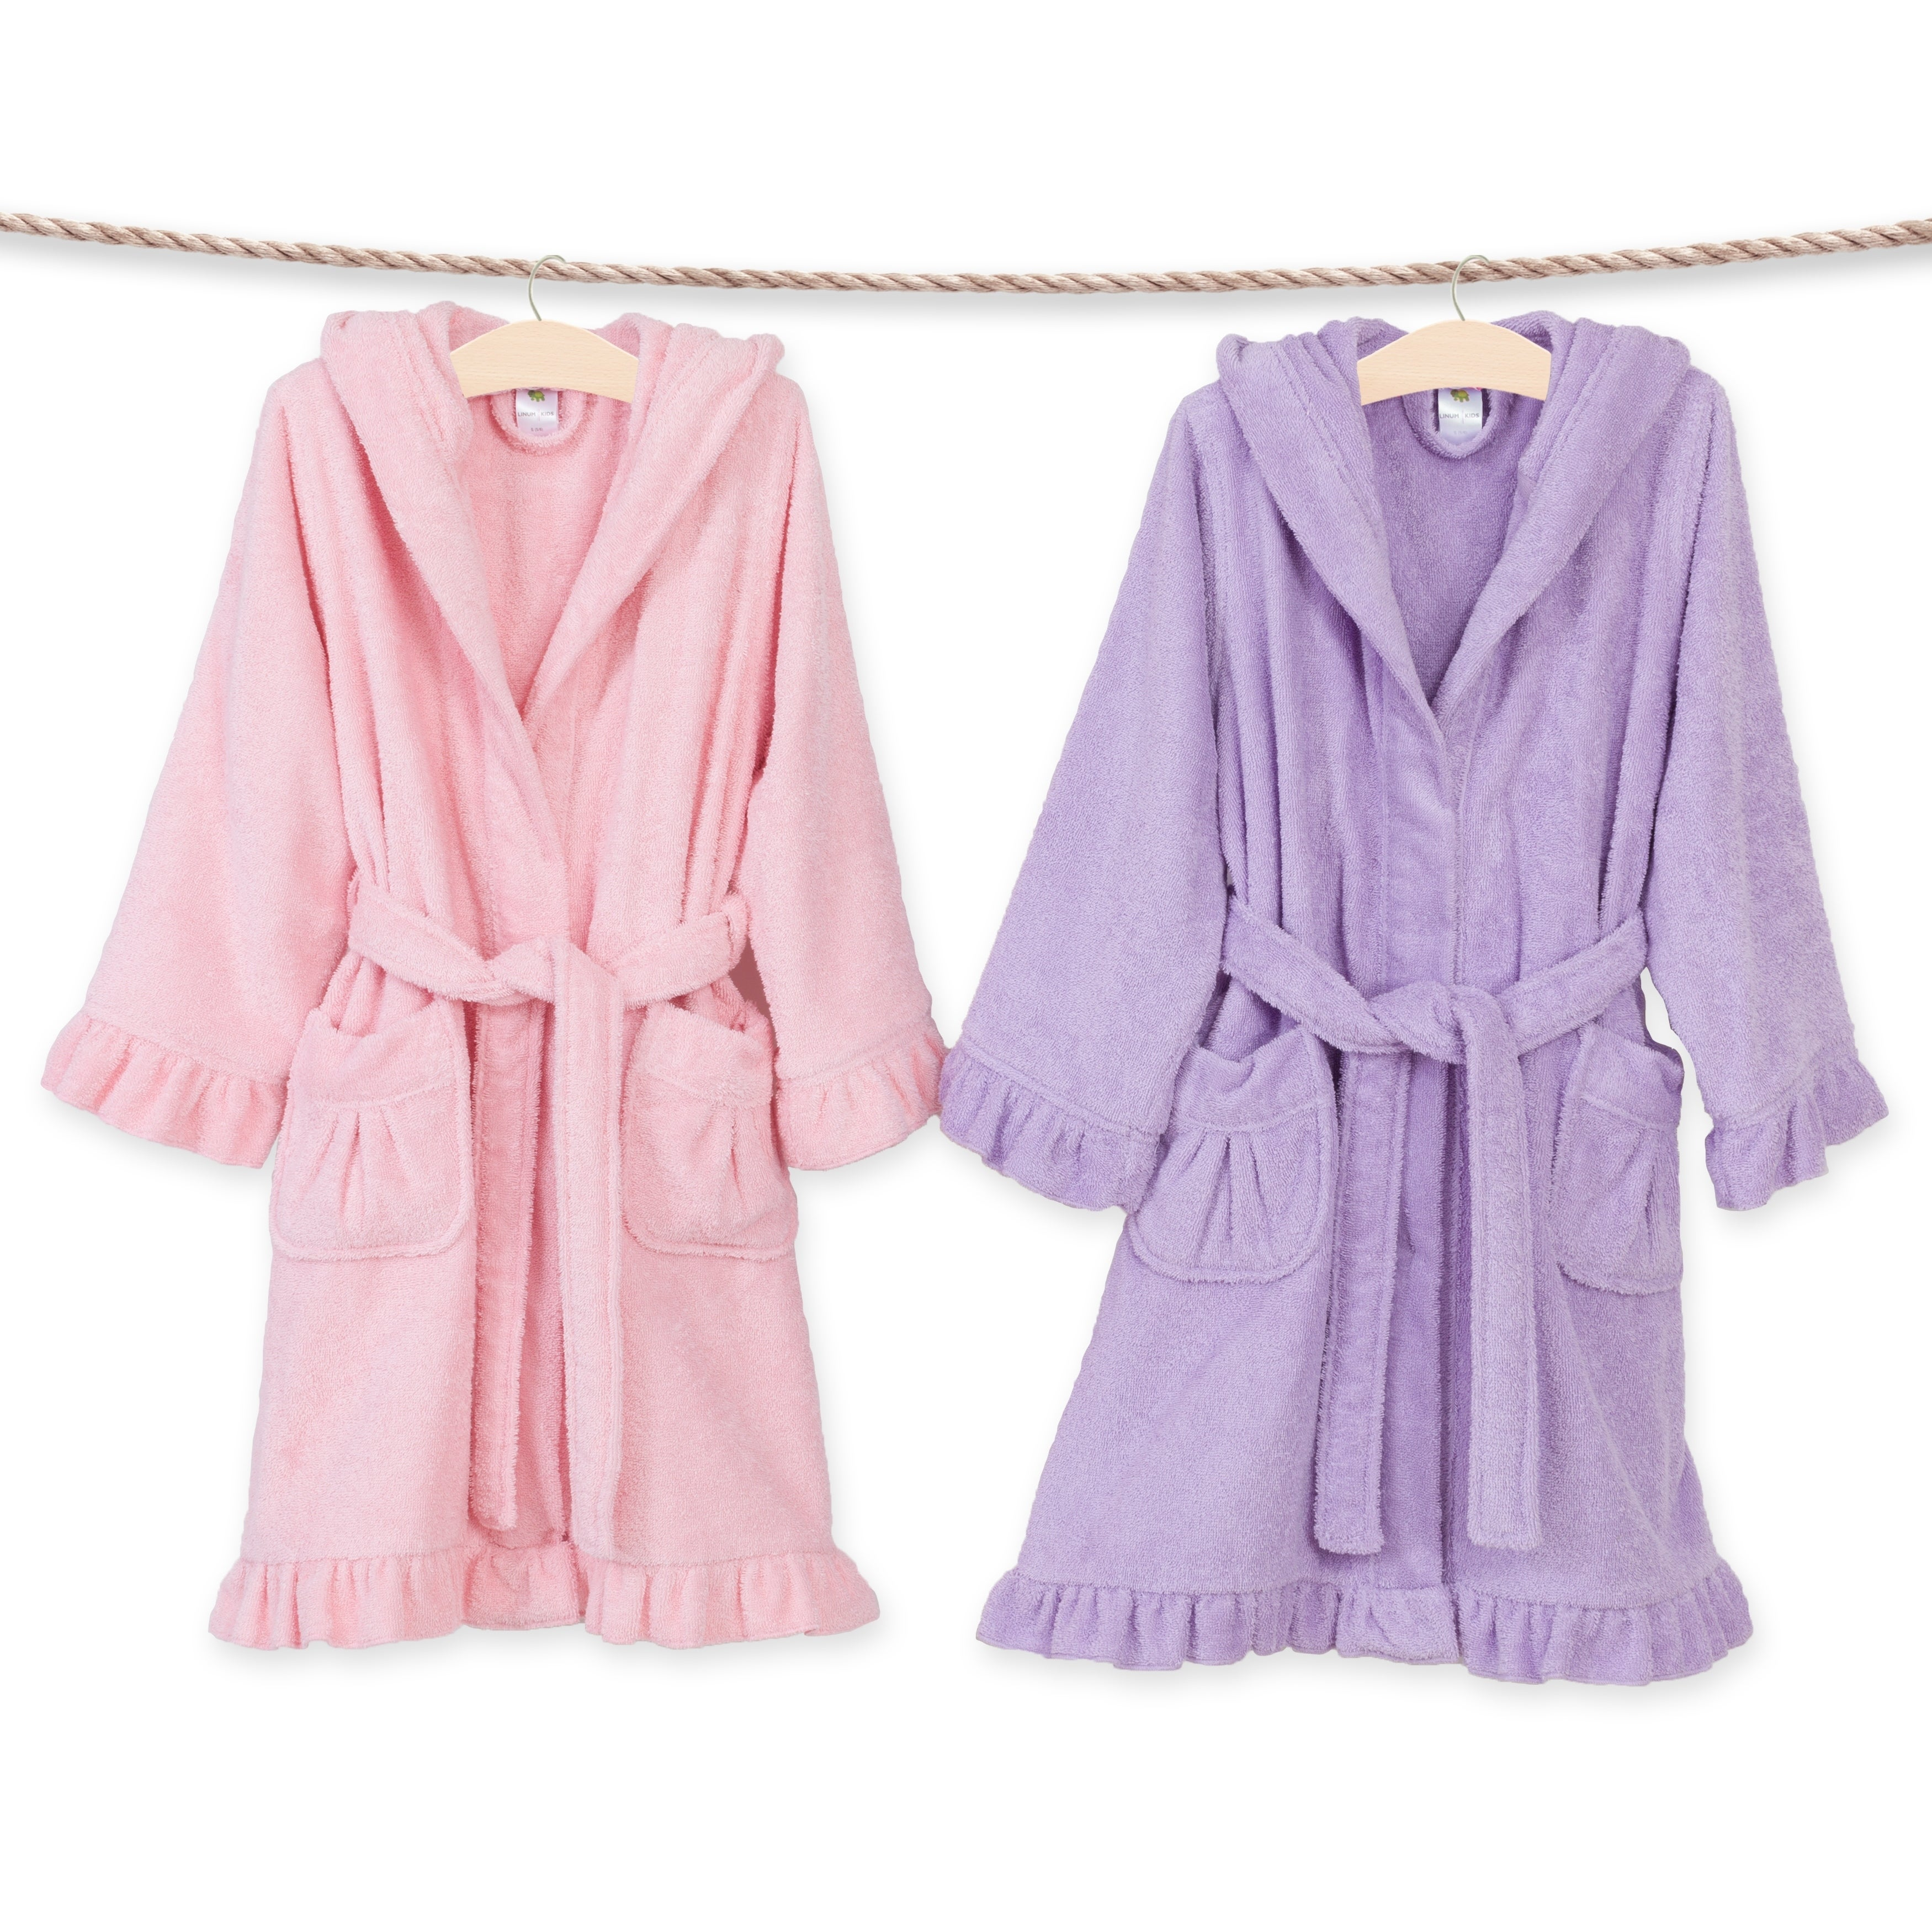 Shop Sweet Kids Ruffled Turkish Cotton Hooded Terry Bathrobe - Free  Shipping On Orders Over  45 - Overstock - 18007869 a8082ff6d